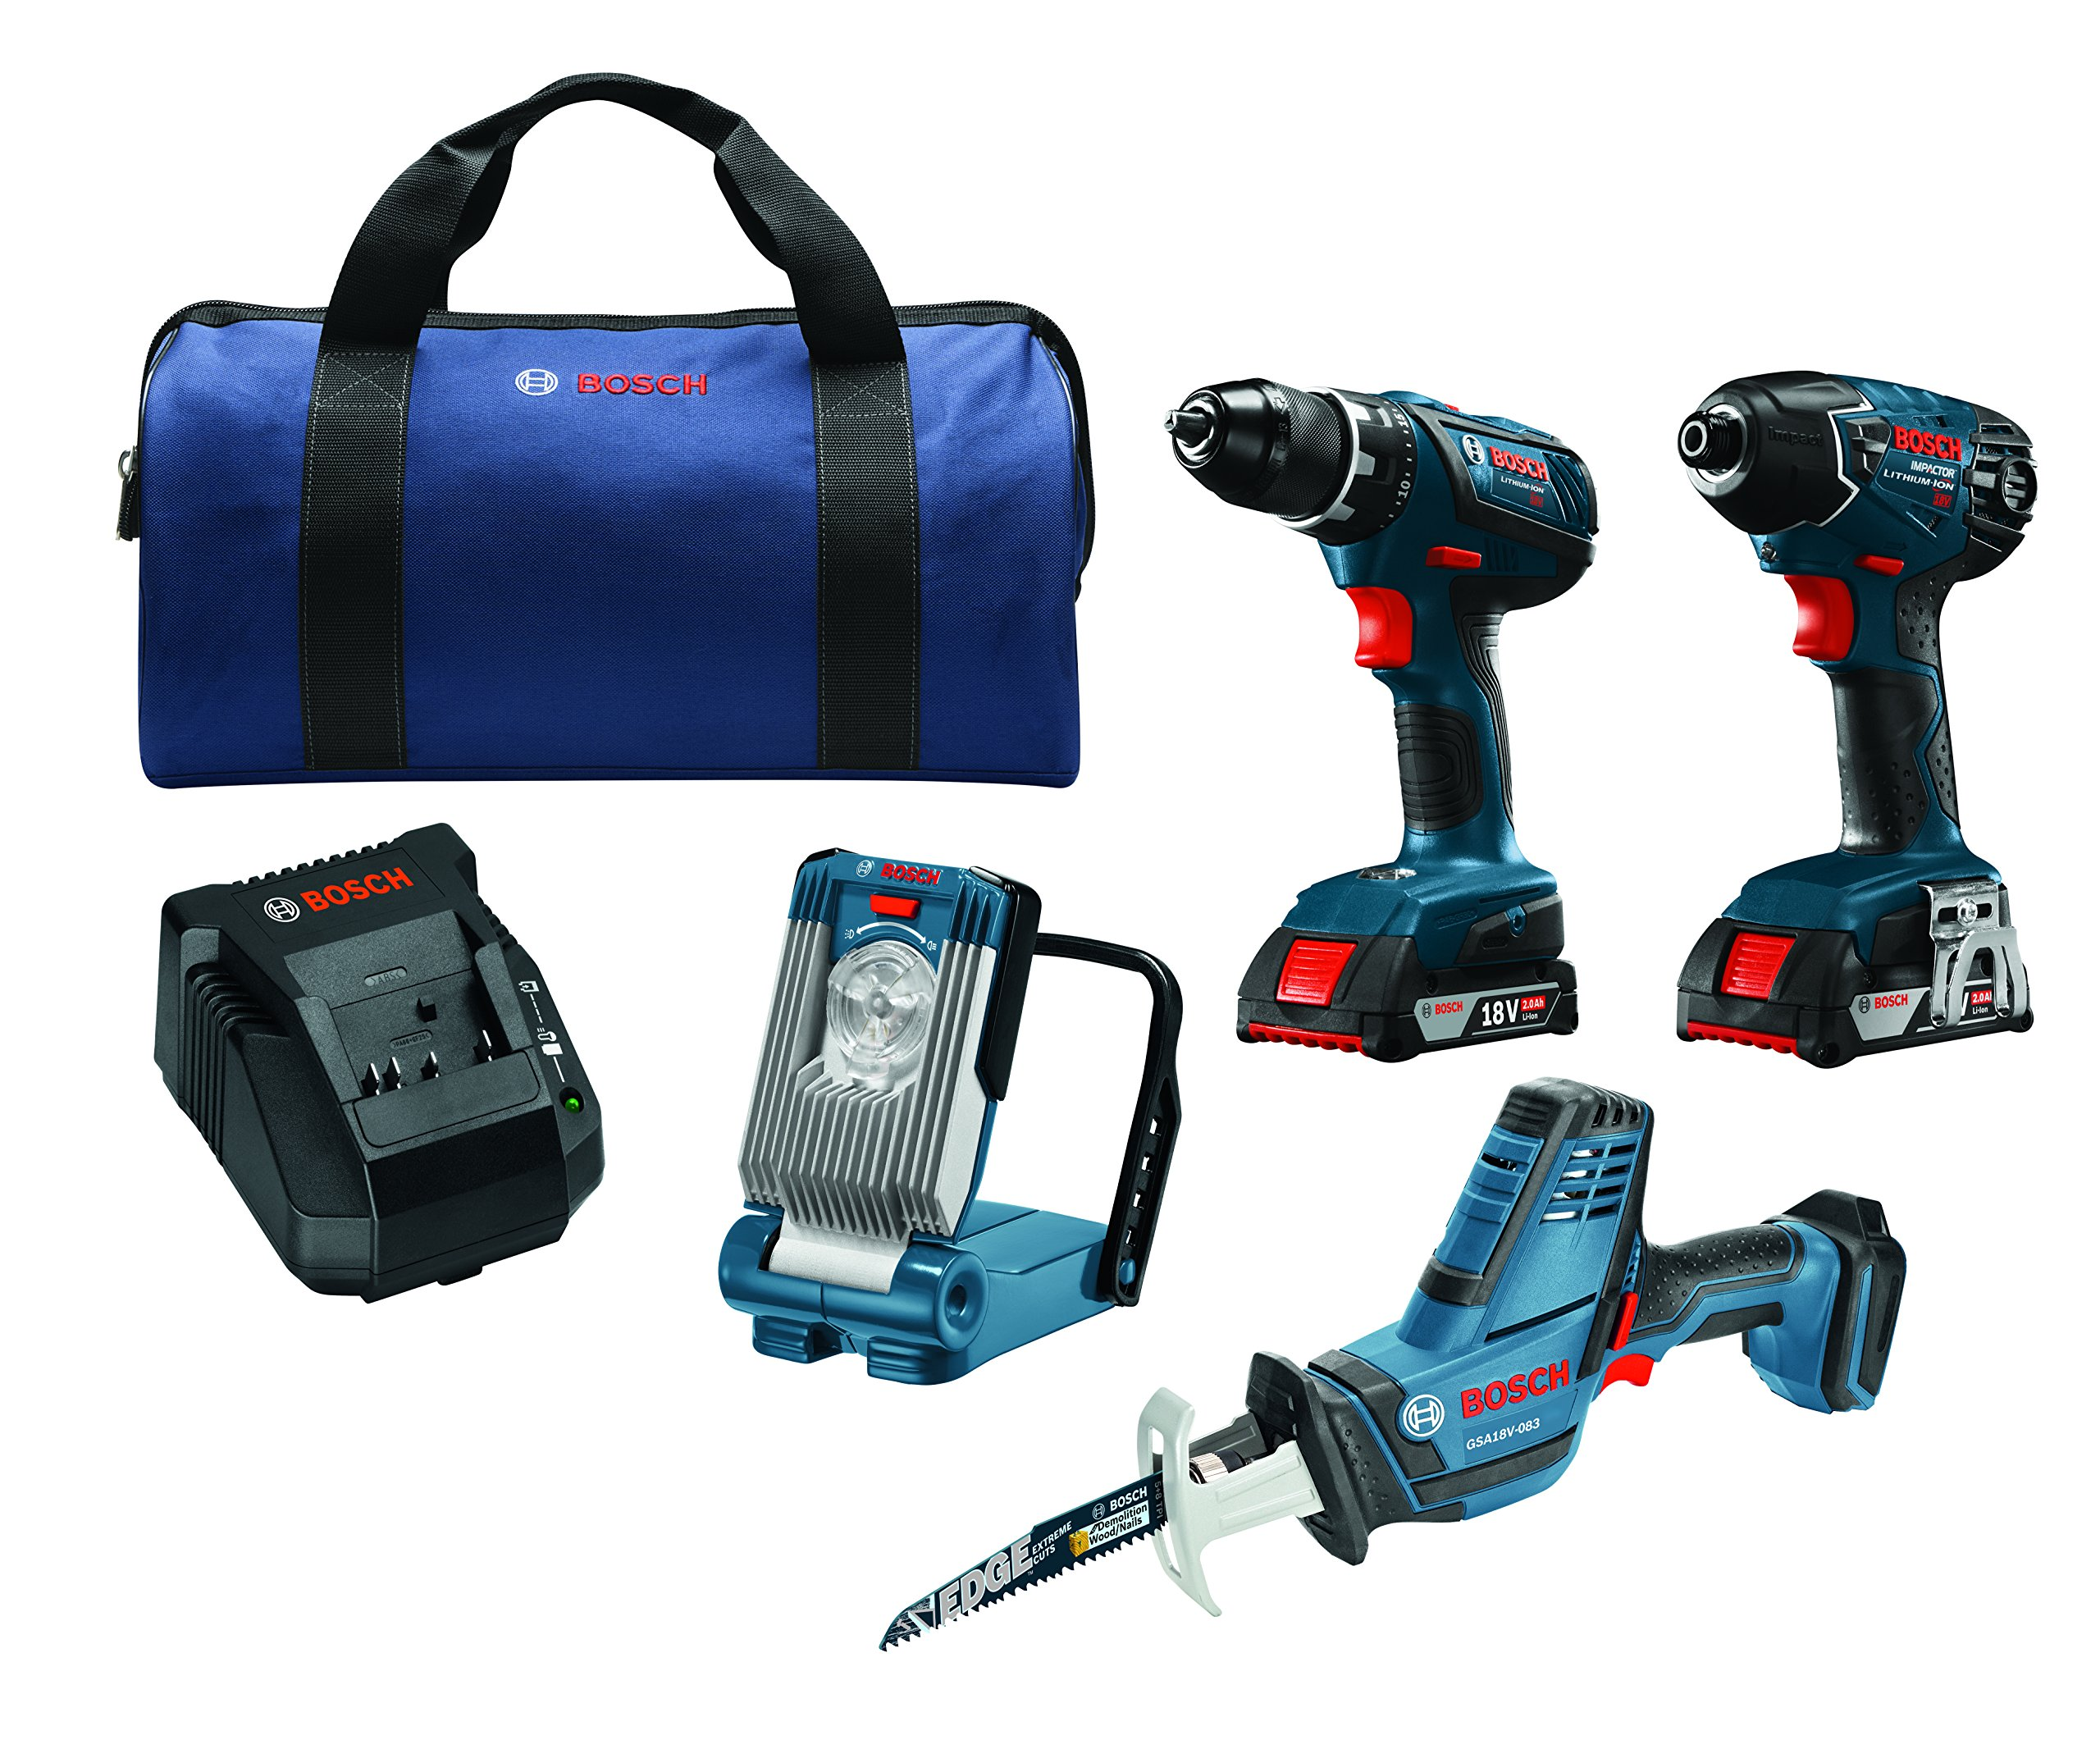 Bosch CLPK496A-181 18V Lithium-Ion 4-Tool Combo Kit with Compact Tough Drill Driver, Impact Driver, Compact Reciprocating Saw, LED Work Light & 2 Amp SlimPack Batteries